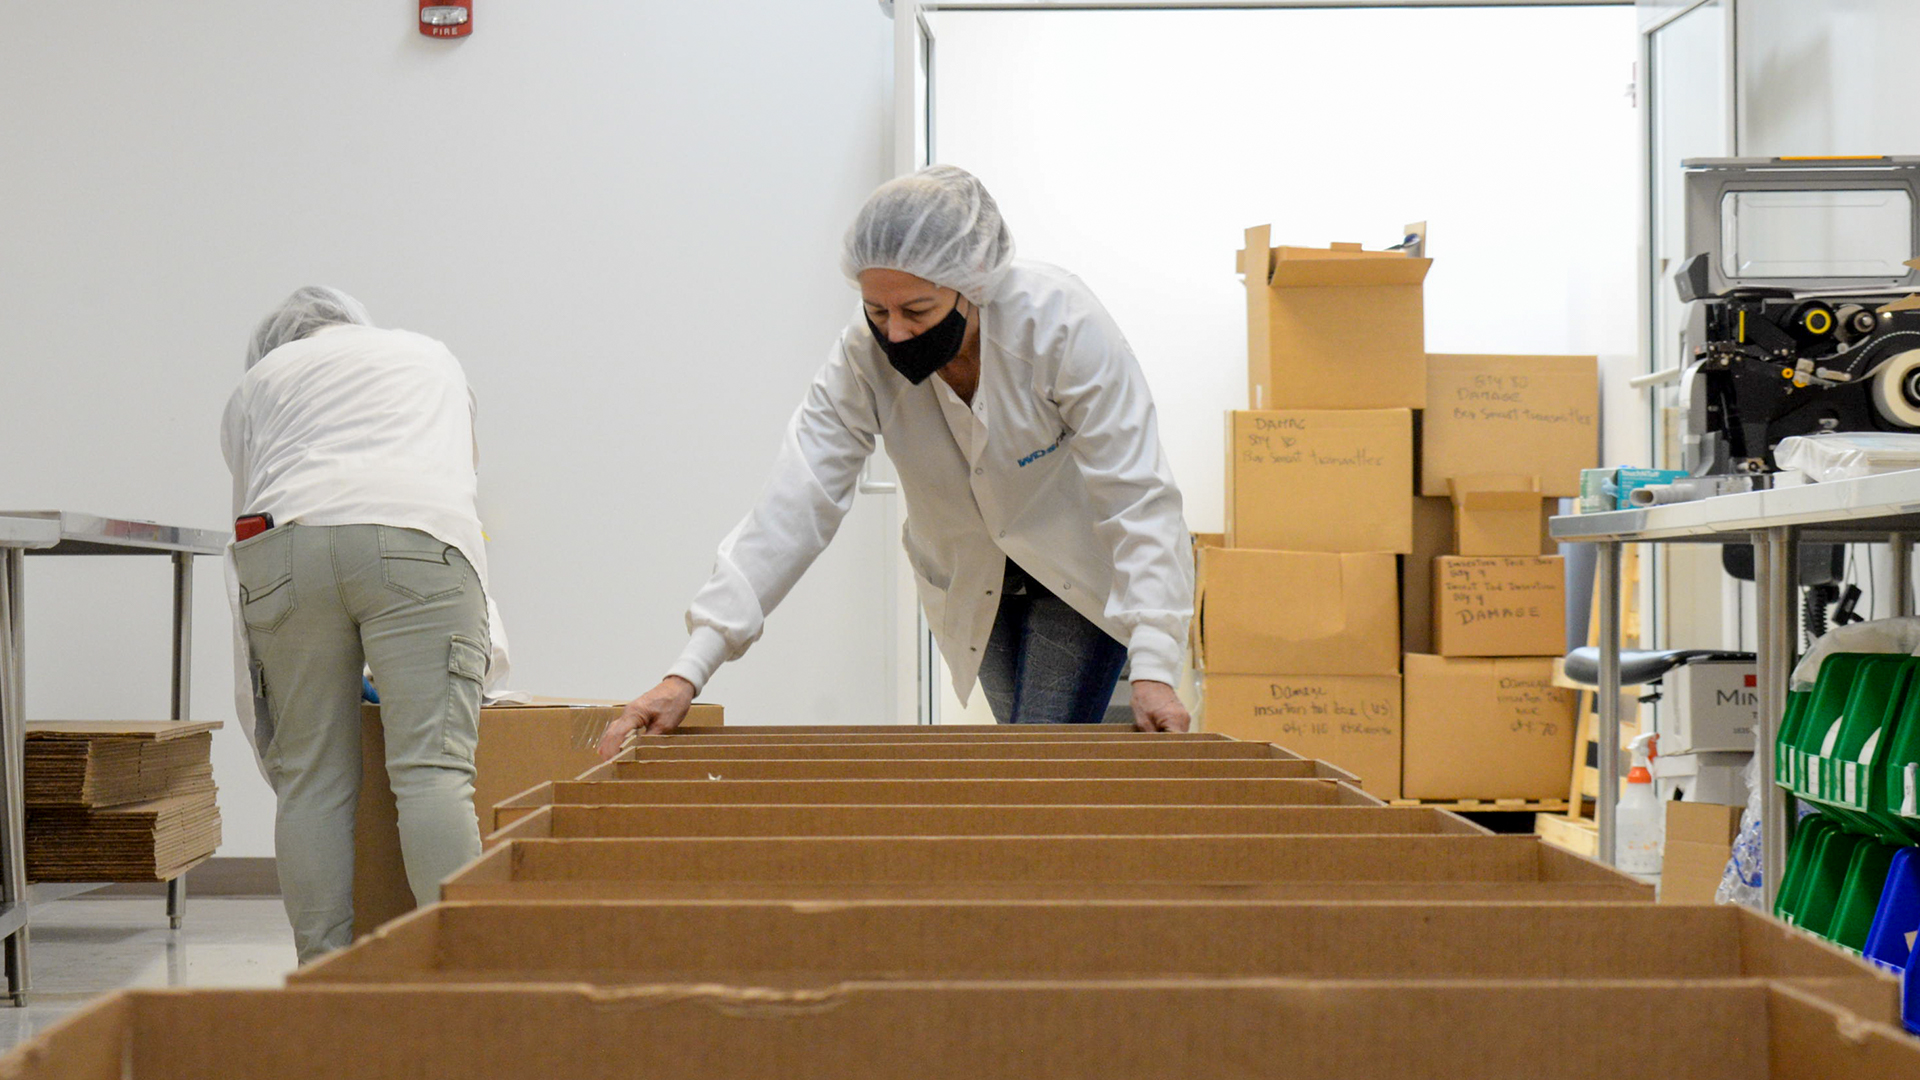 production technician prepping empty boxes for medical device assembly